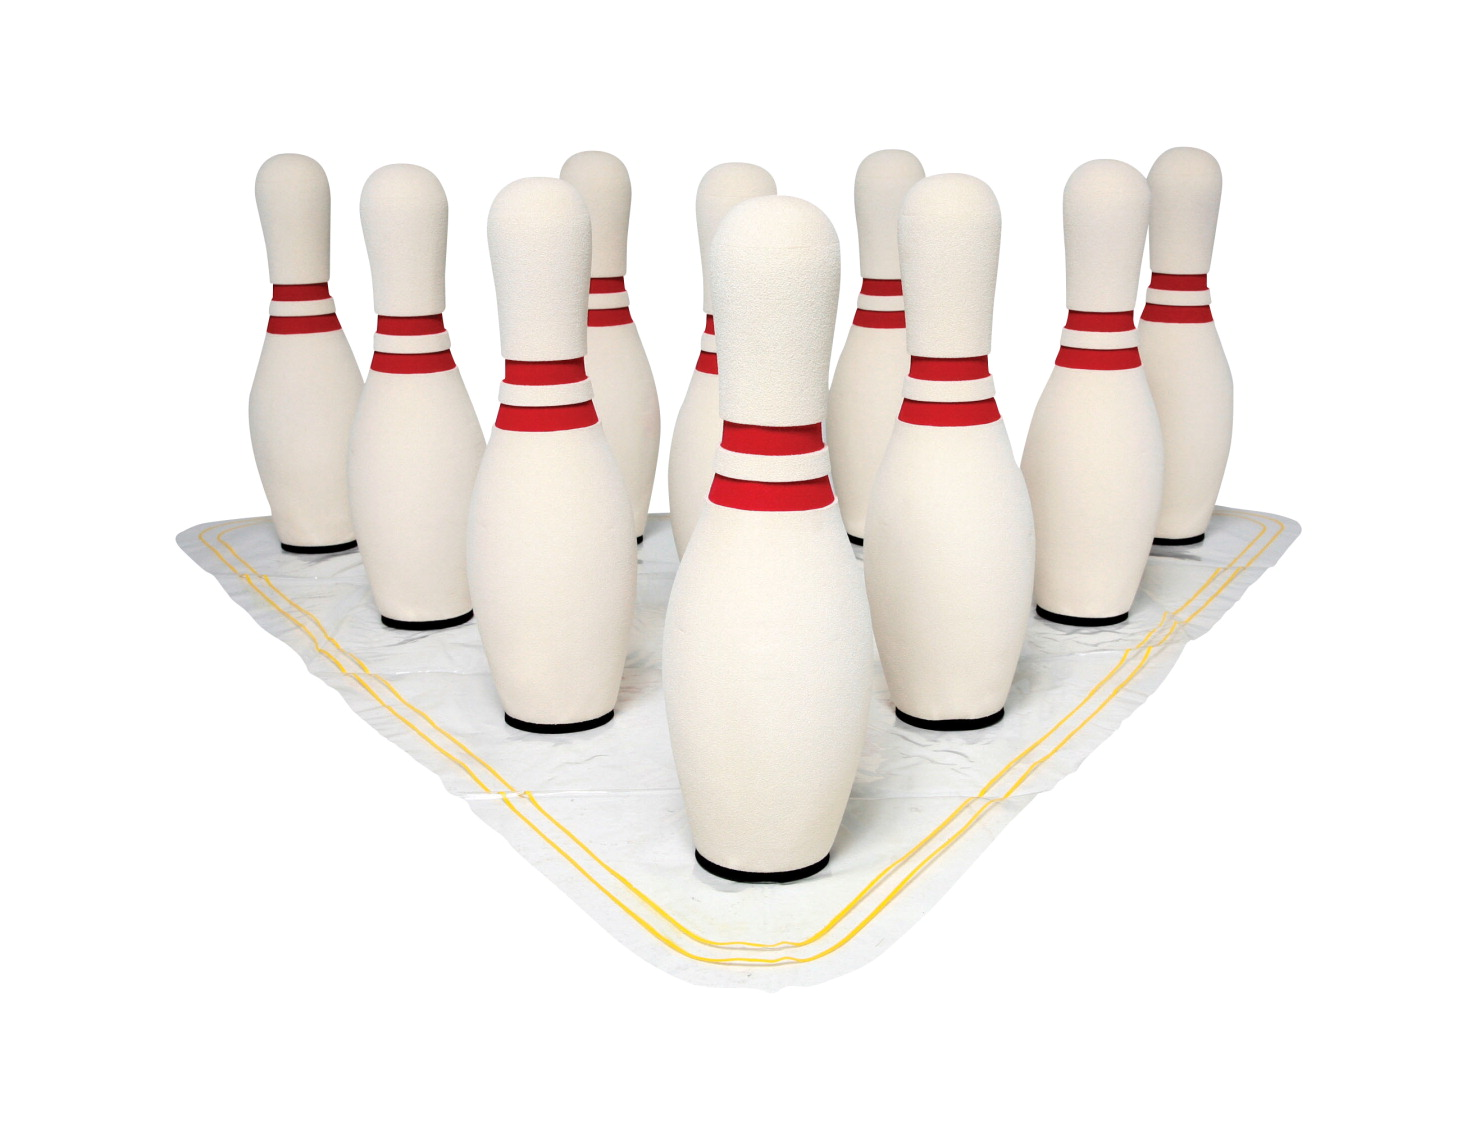 UltraFoam 15 Inch Unweighted Bowling Pins, Set of 10